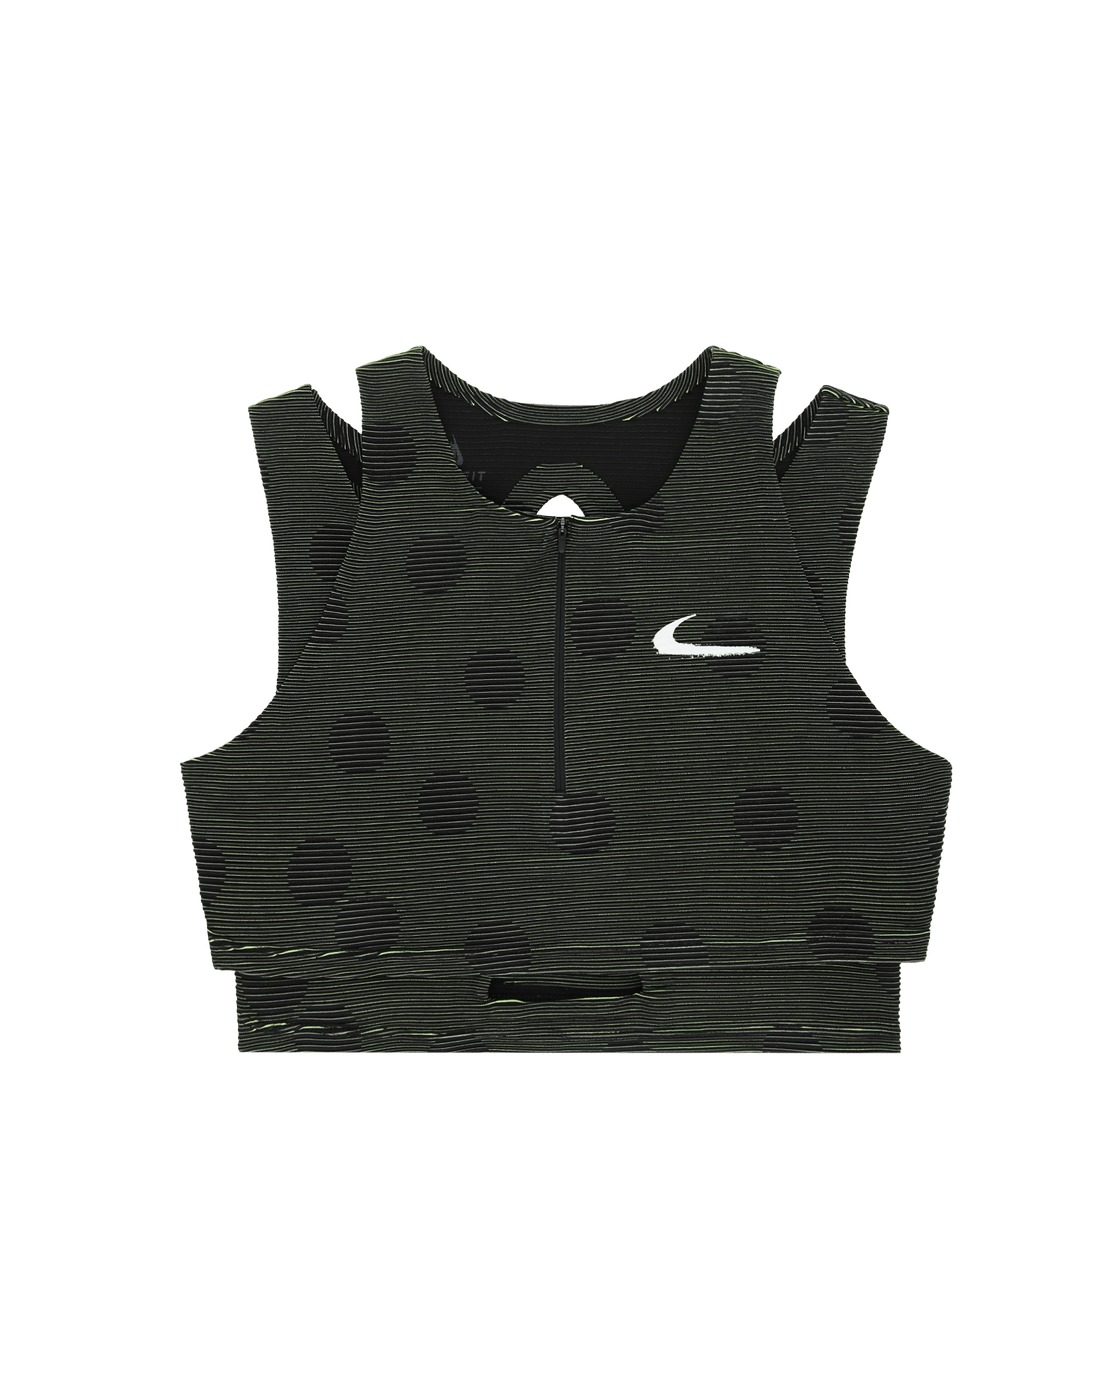 Photo: Nike Special Project Off White Top Black